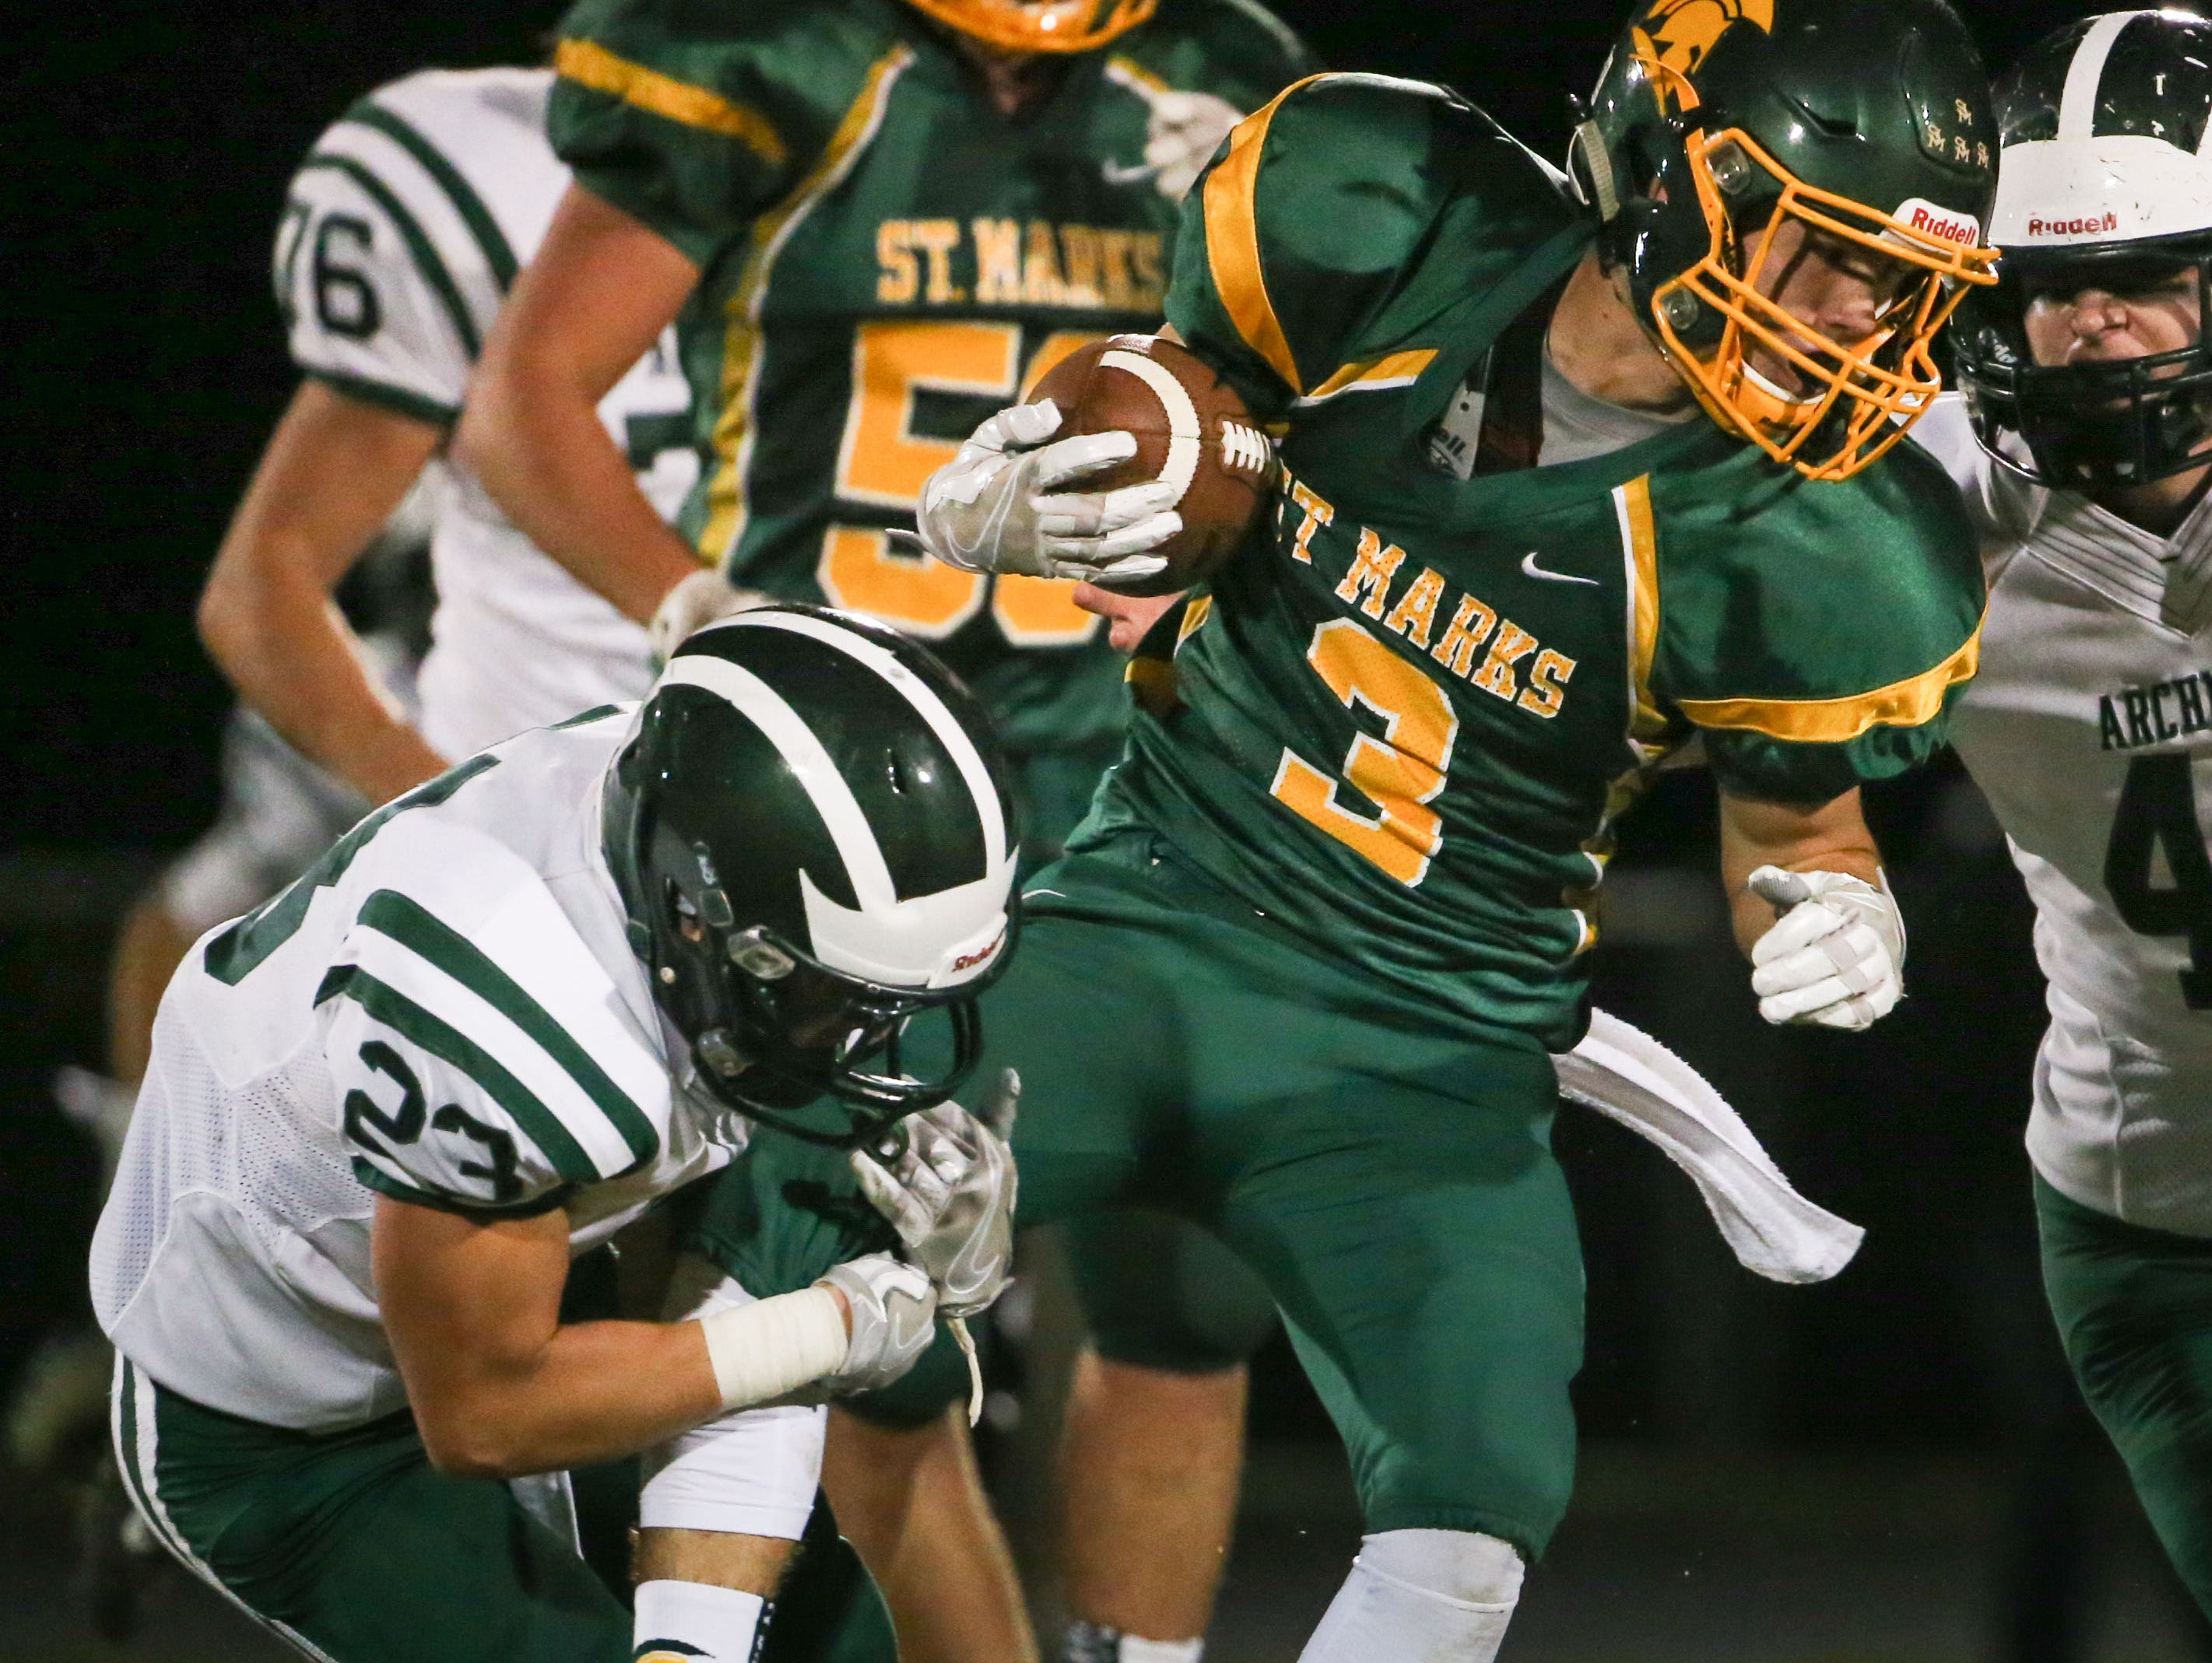 St. Mark's running back Maxwell Palmer is tied up by Archmere defensive back Patrick McVey in the second quarter of their game at St. Mark's Friday.